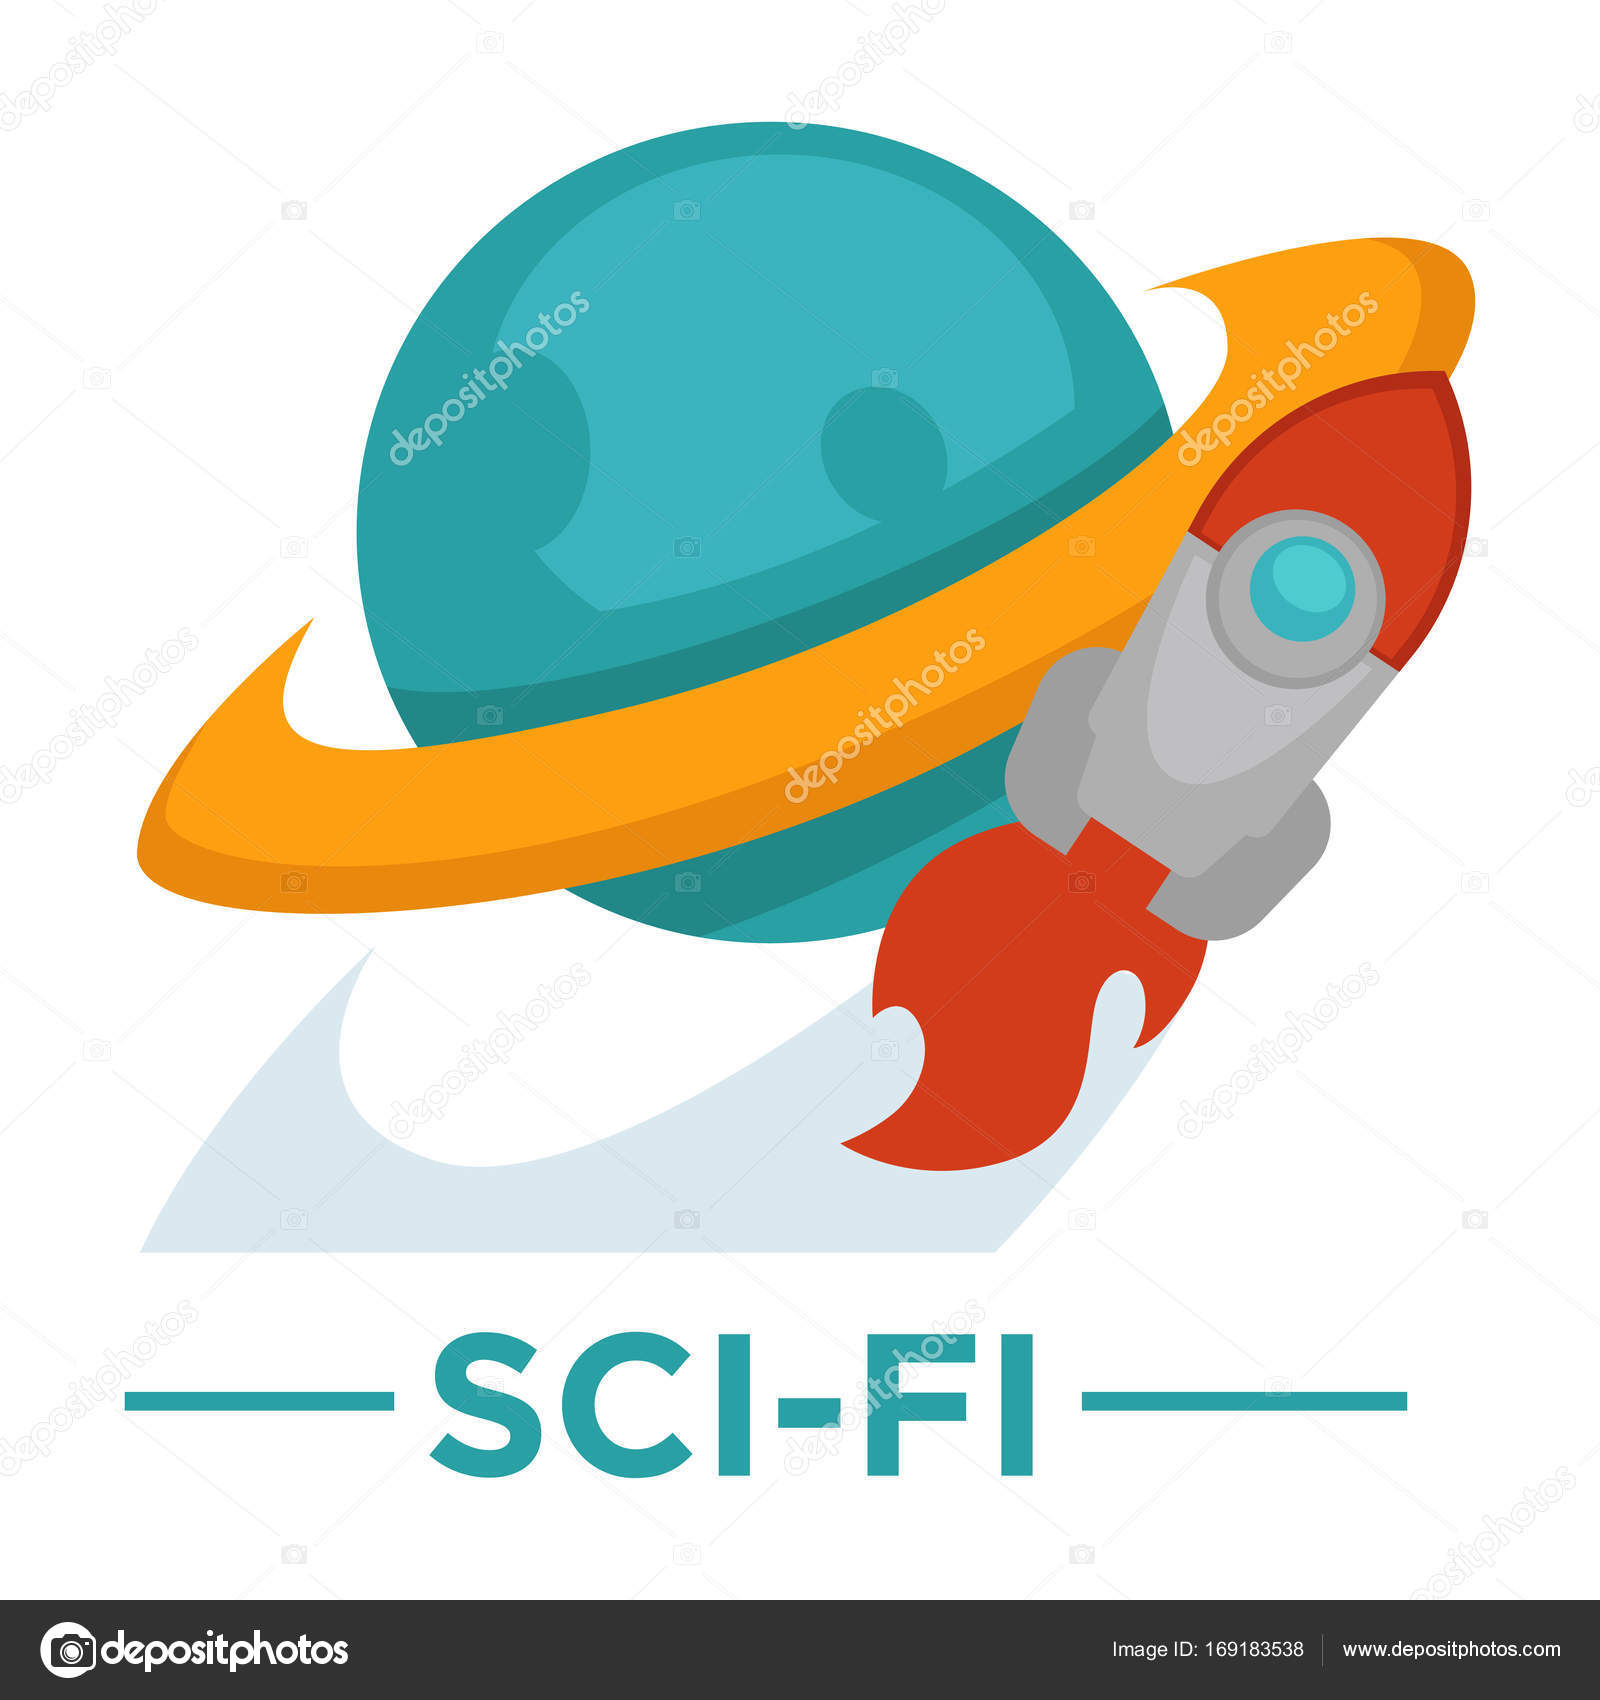 Movie sci fi genre icon stock vector sonulkaster 169183538 movie sci fi genre icon with globe and rocket symbols for cinema or channel movie genre tag vector by sonulkaster biocorpaavc